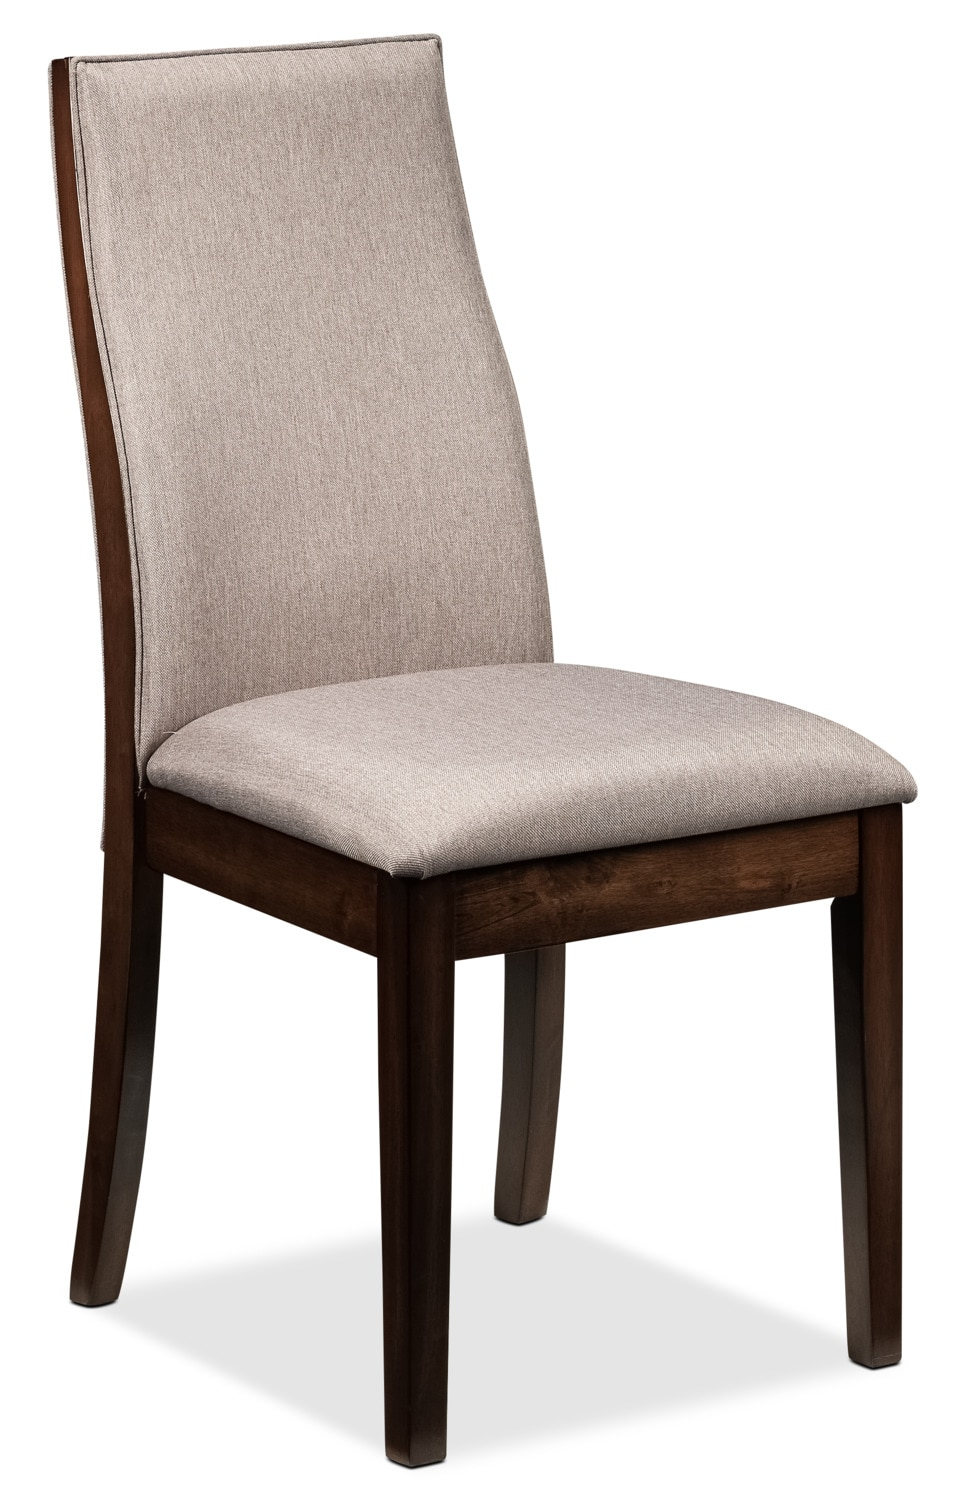 Lena Side Chair - Cherry